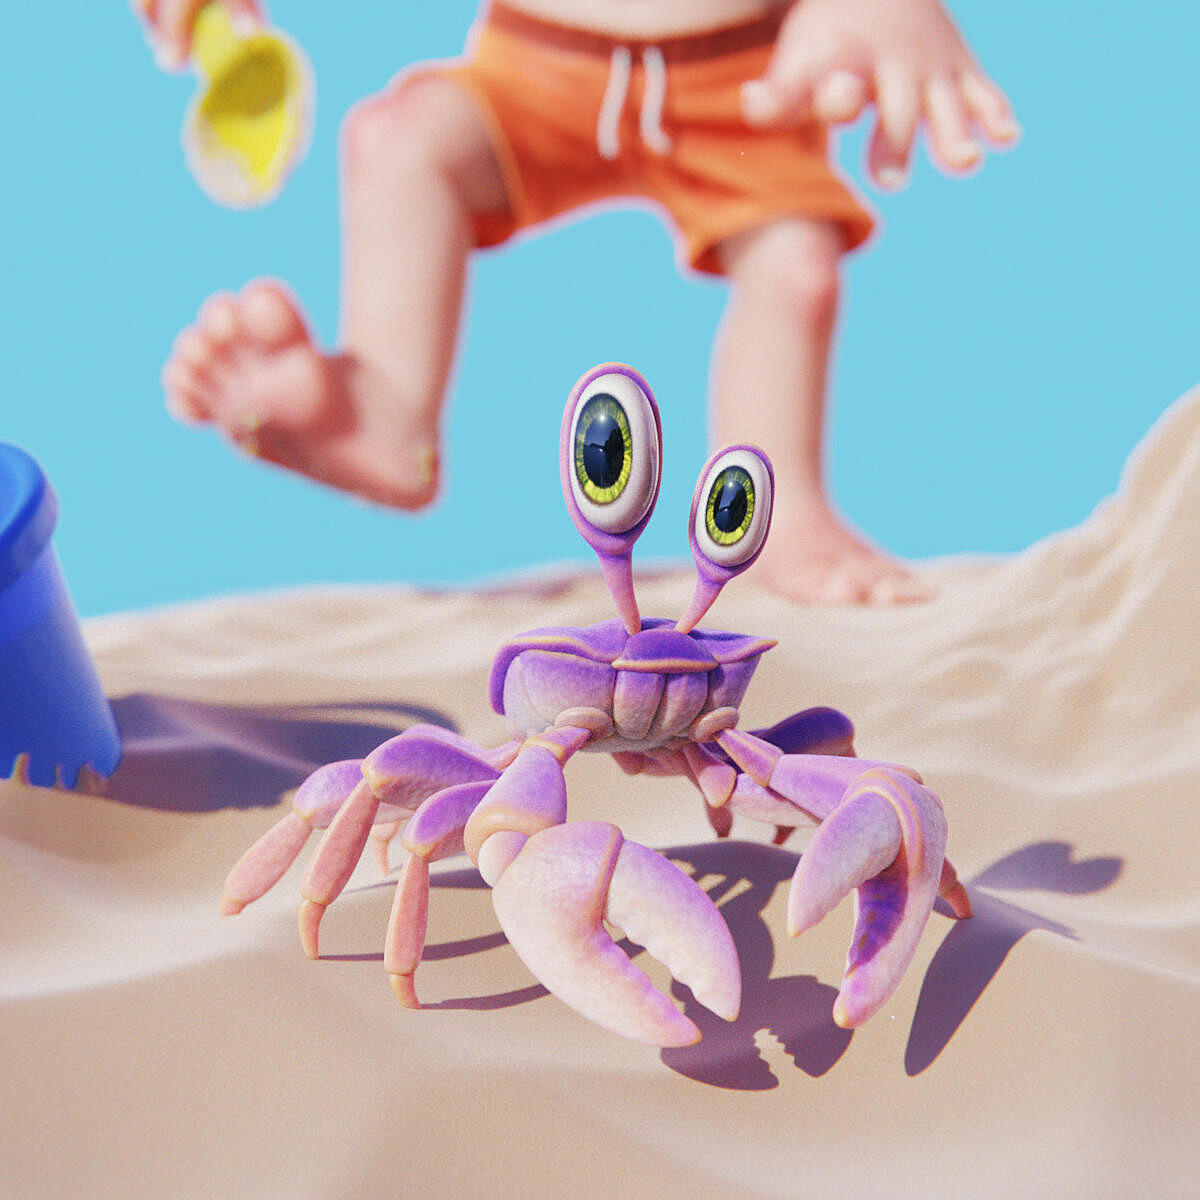 Toddler and the Crab